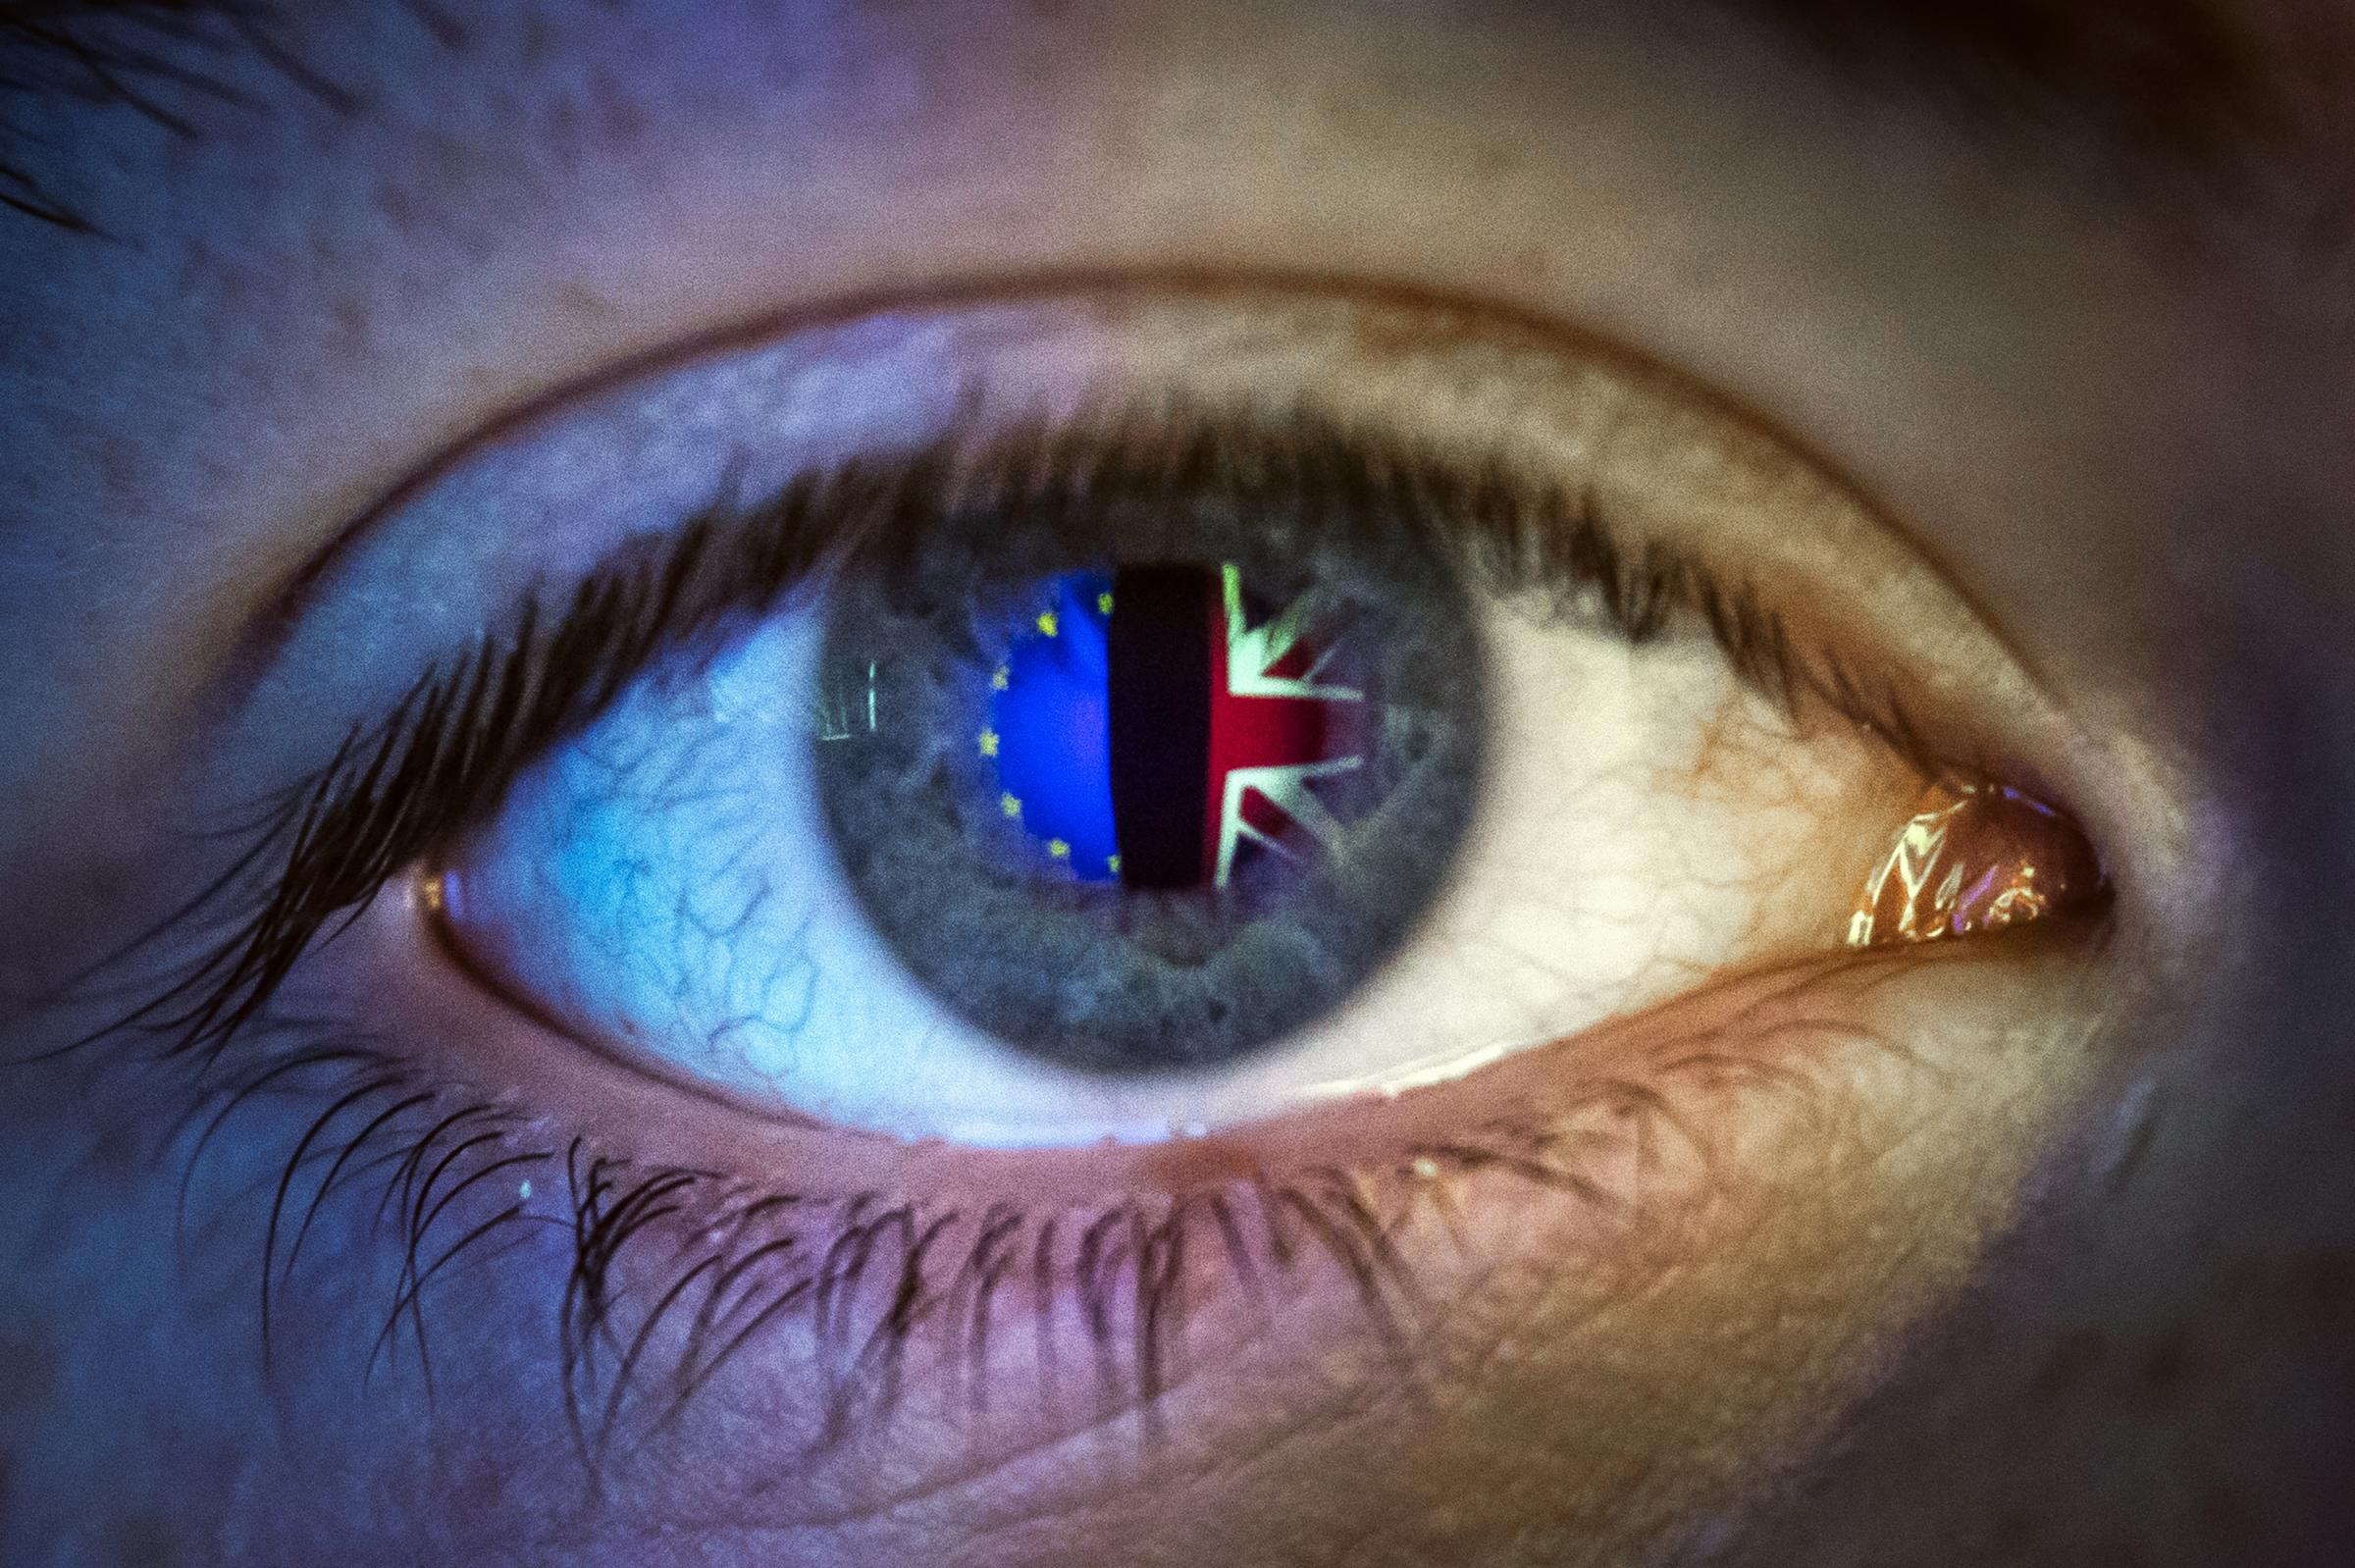 Reflections of a European flag (left) and Union flag, seen in a person's eye Picture: PA